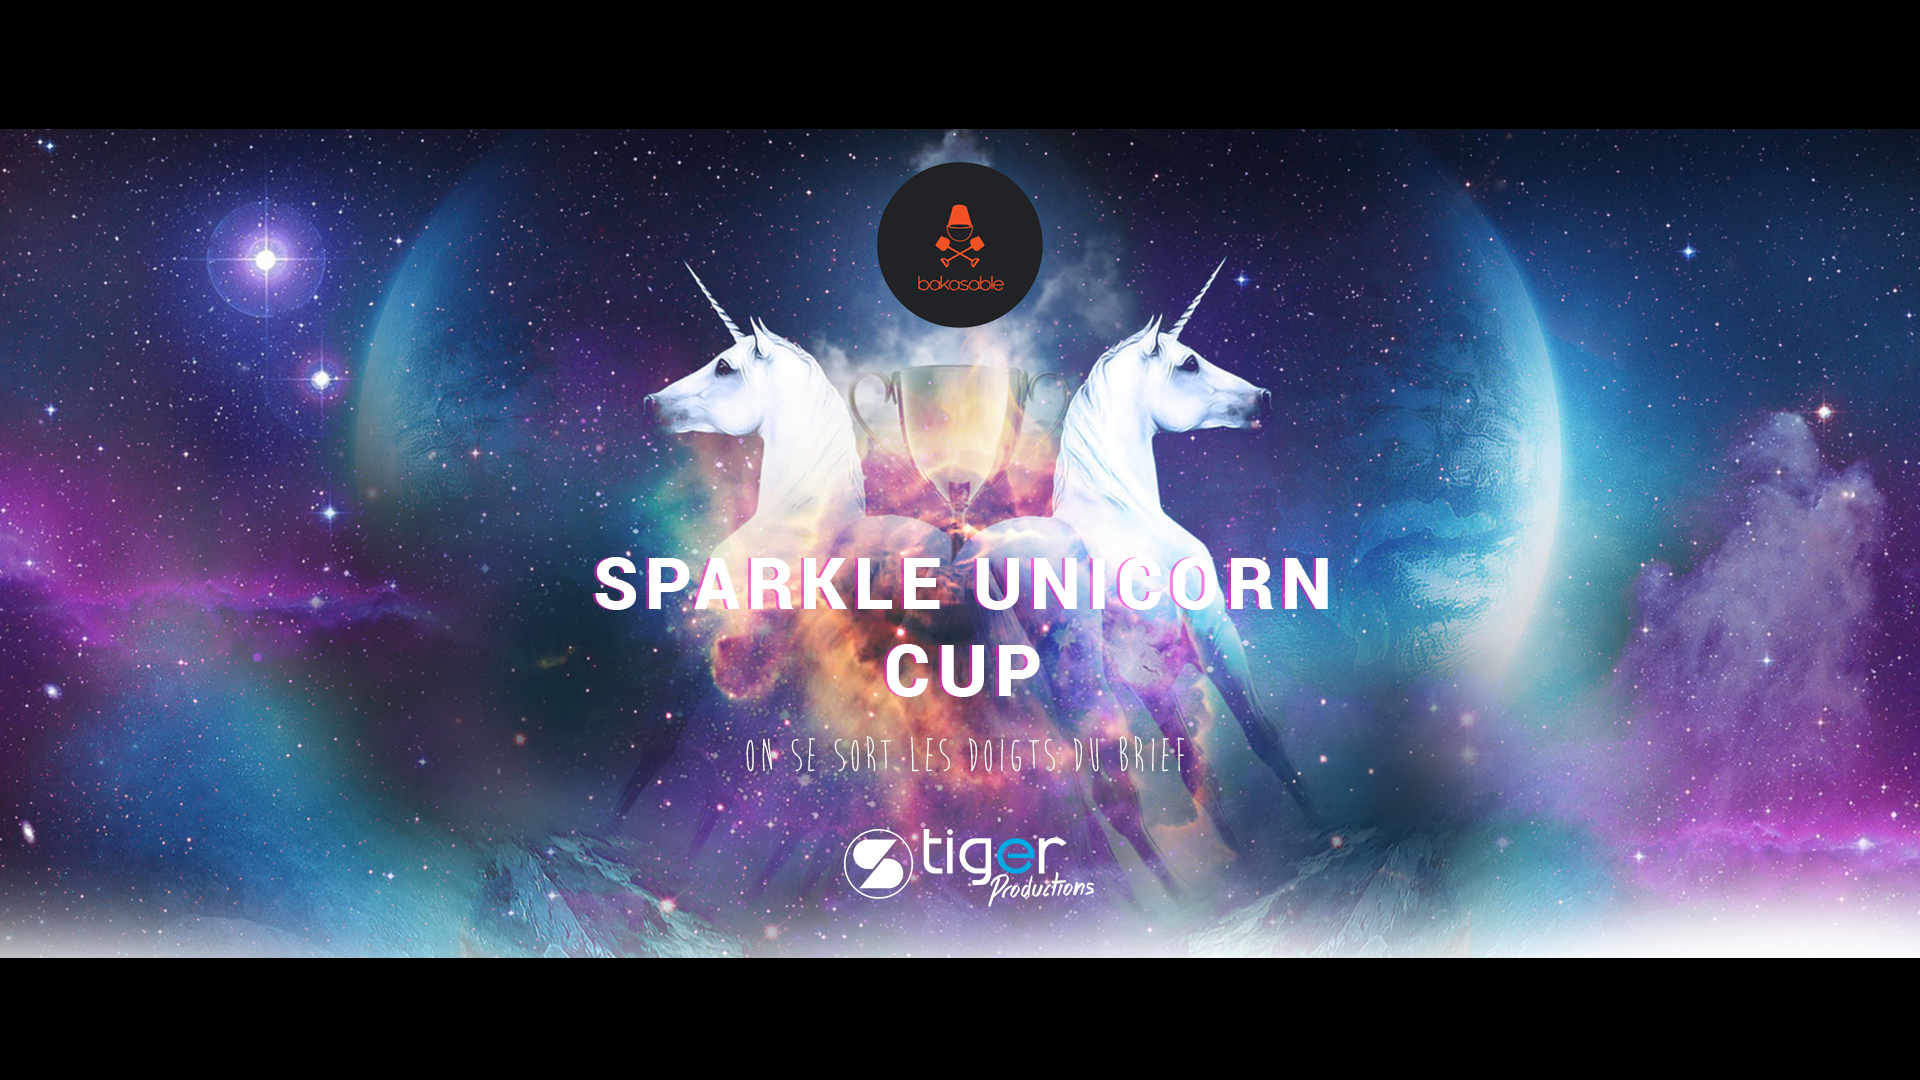 SPARKLE UNICORN CUP 2015